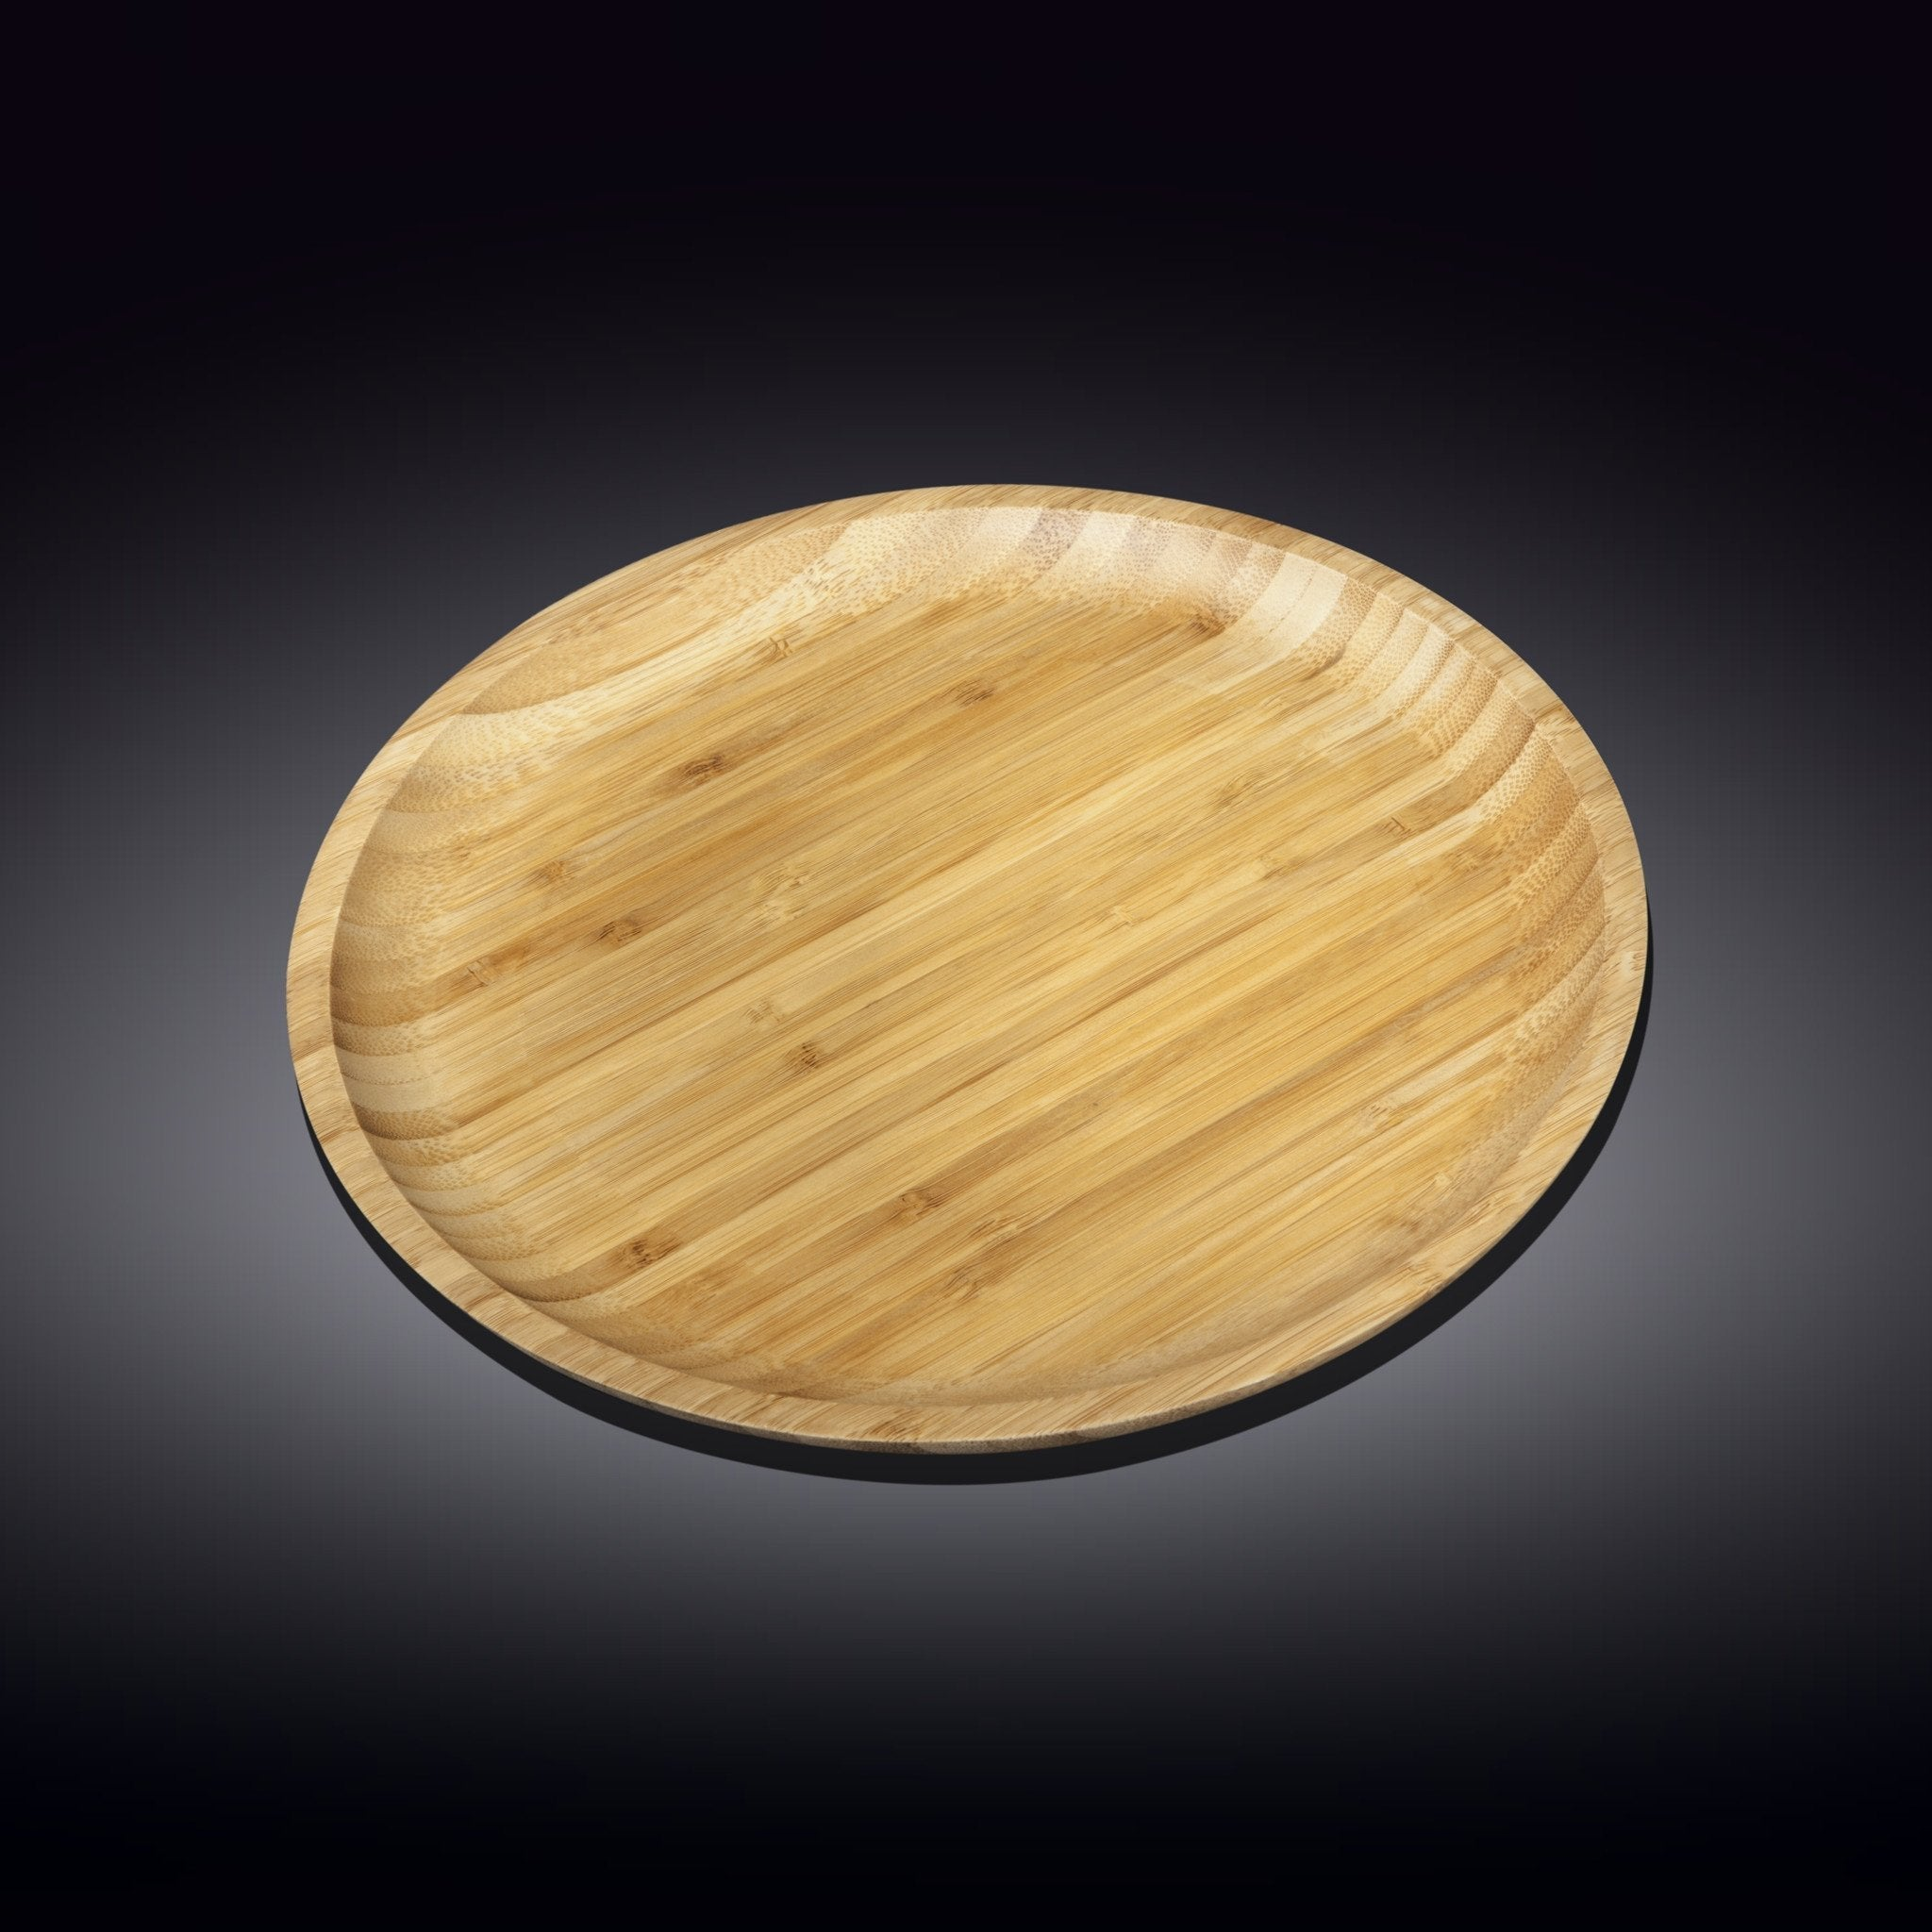 NATURAL BAMBOO PLATE 11"